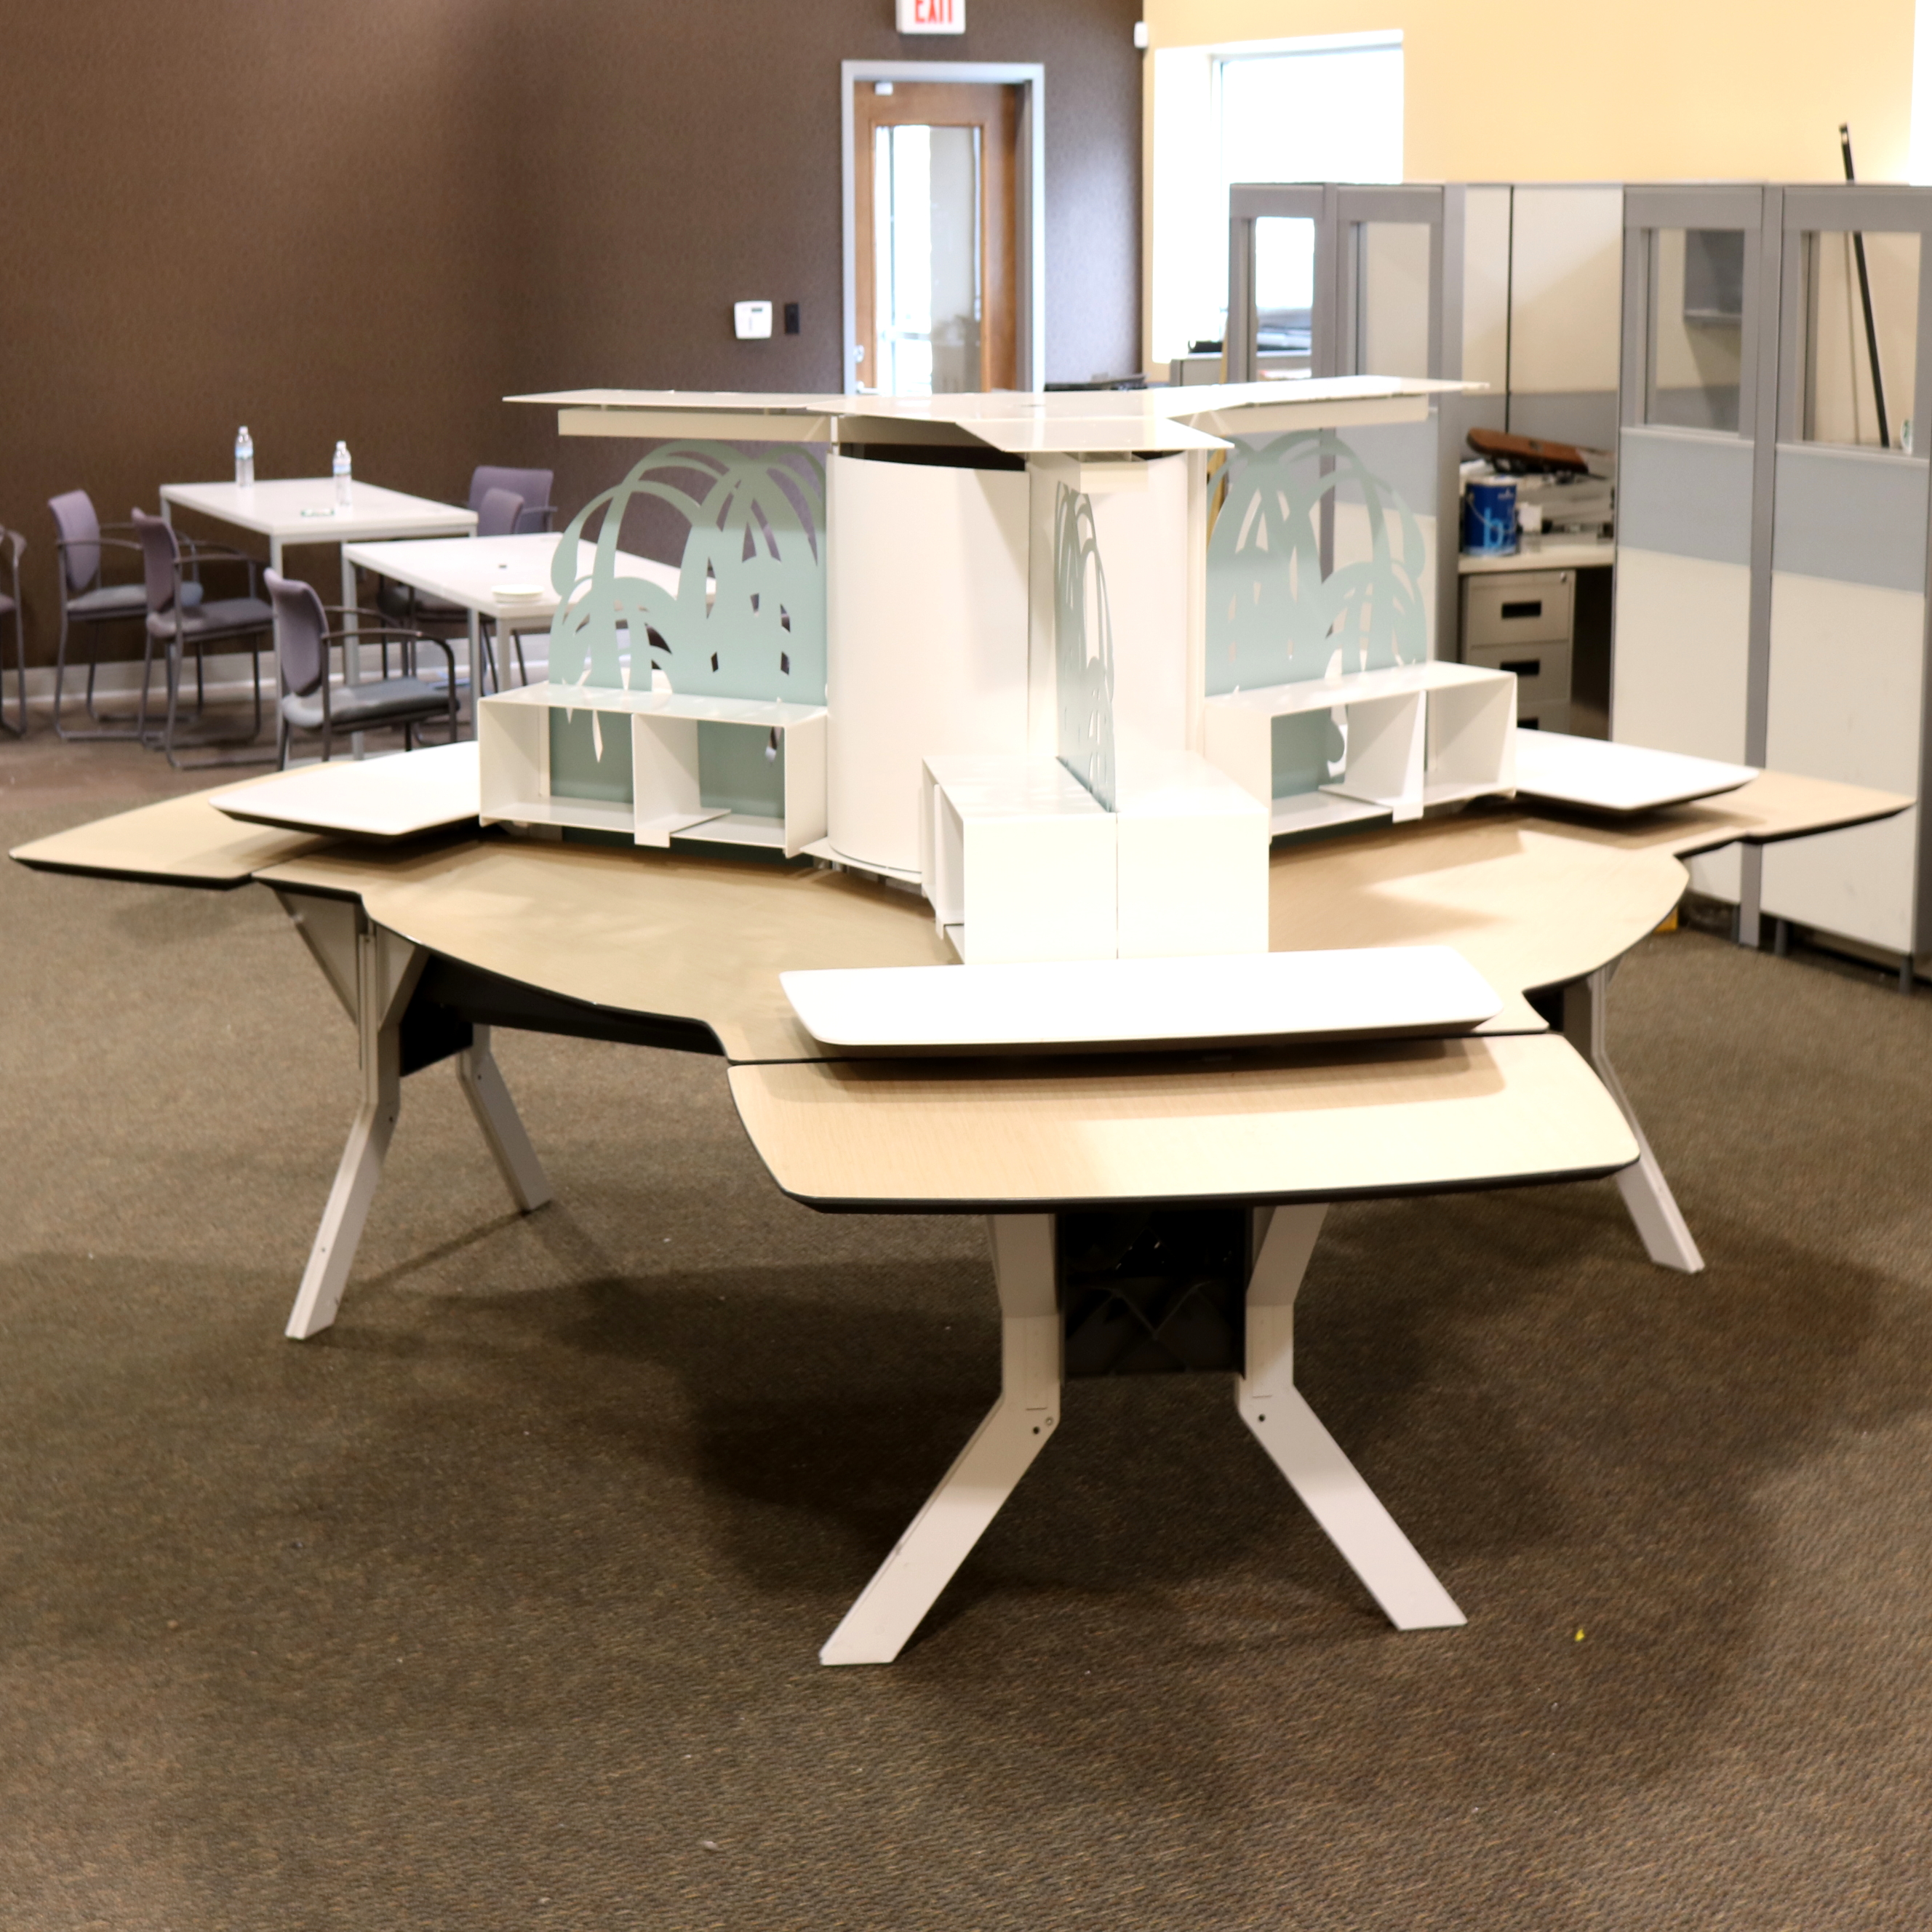 Kimball Office Furniture Person Workstation Morris Habitat For - Kimball office furniture